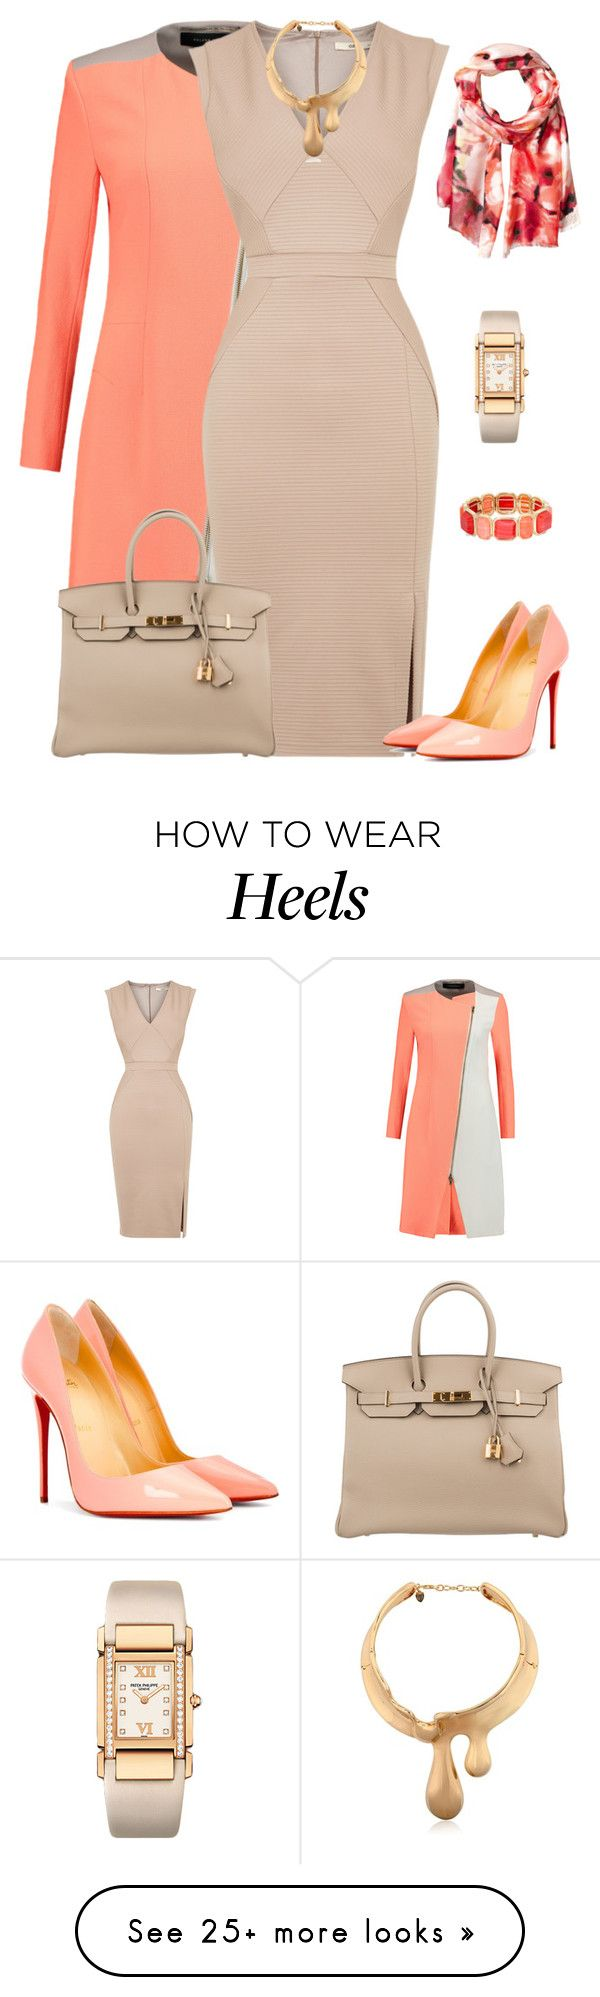 """""""outfit 4000"""" by natalyag on Polyvore featuring Roland Mouret, Oasis, Christian Louboutin, Calvin Klein, Hermès, Monet, Patek Philippe and Schield Collection"""